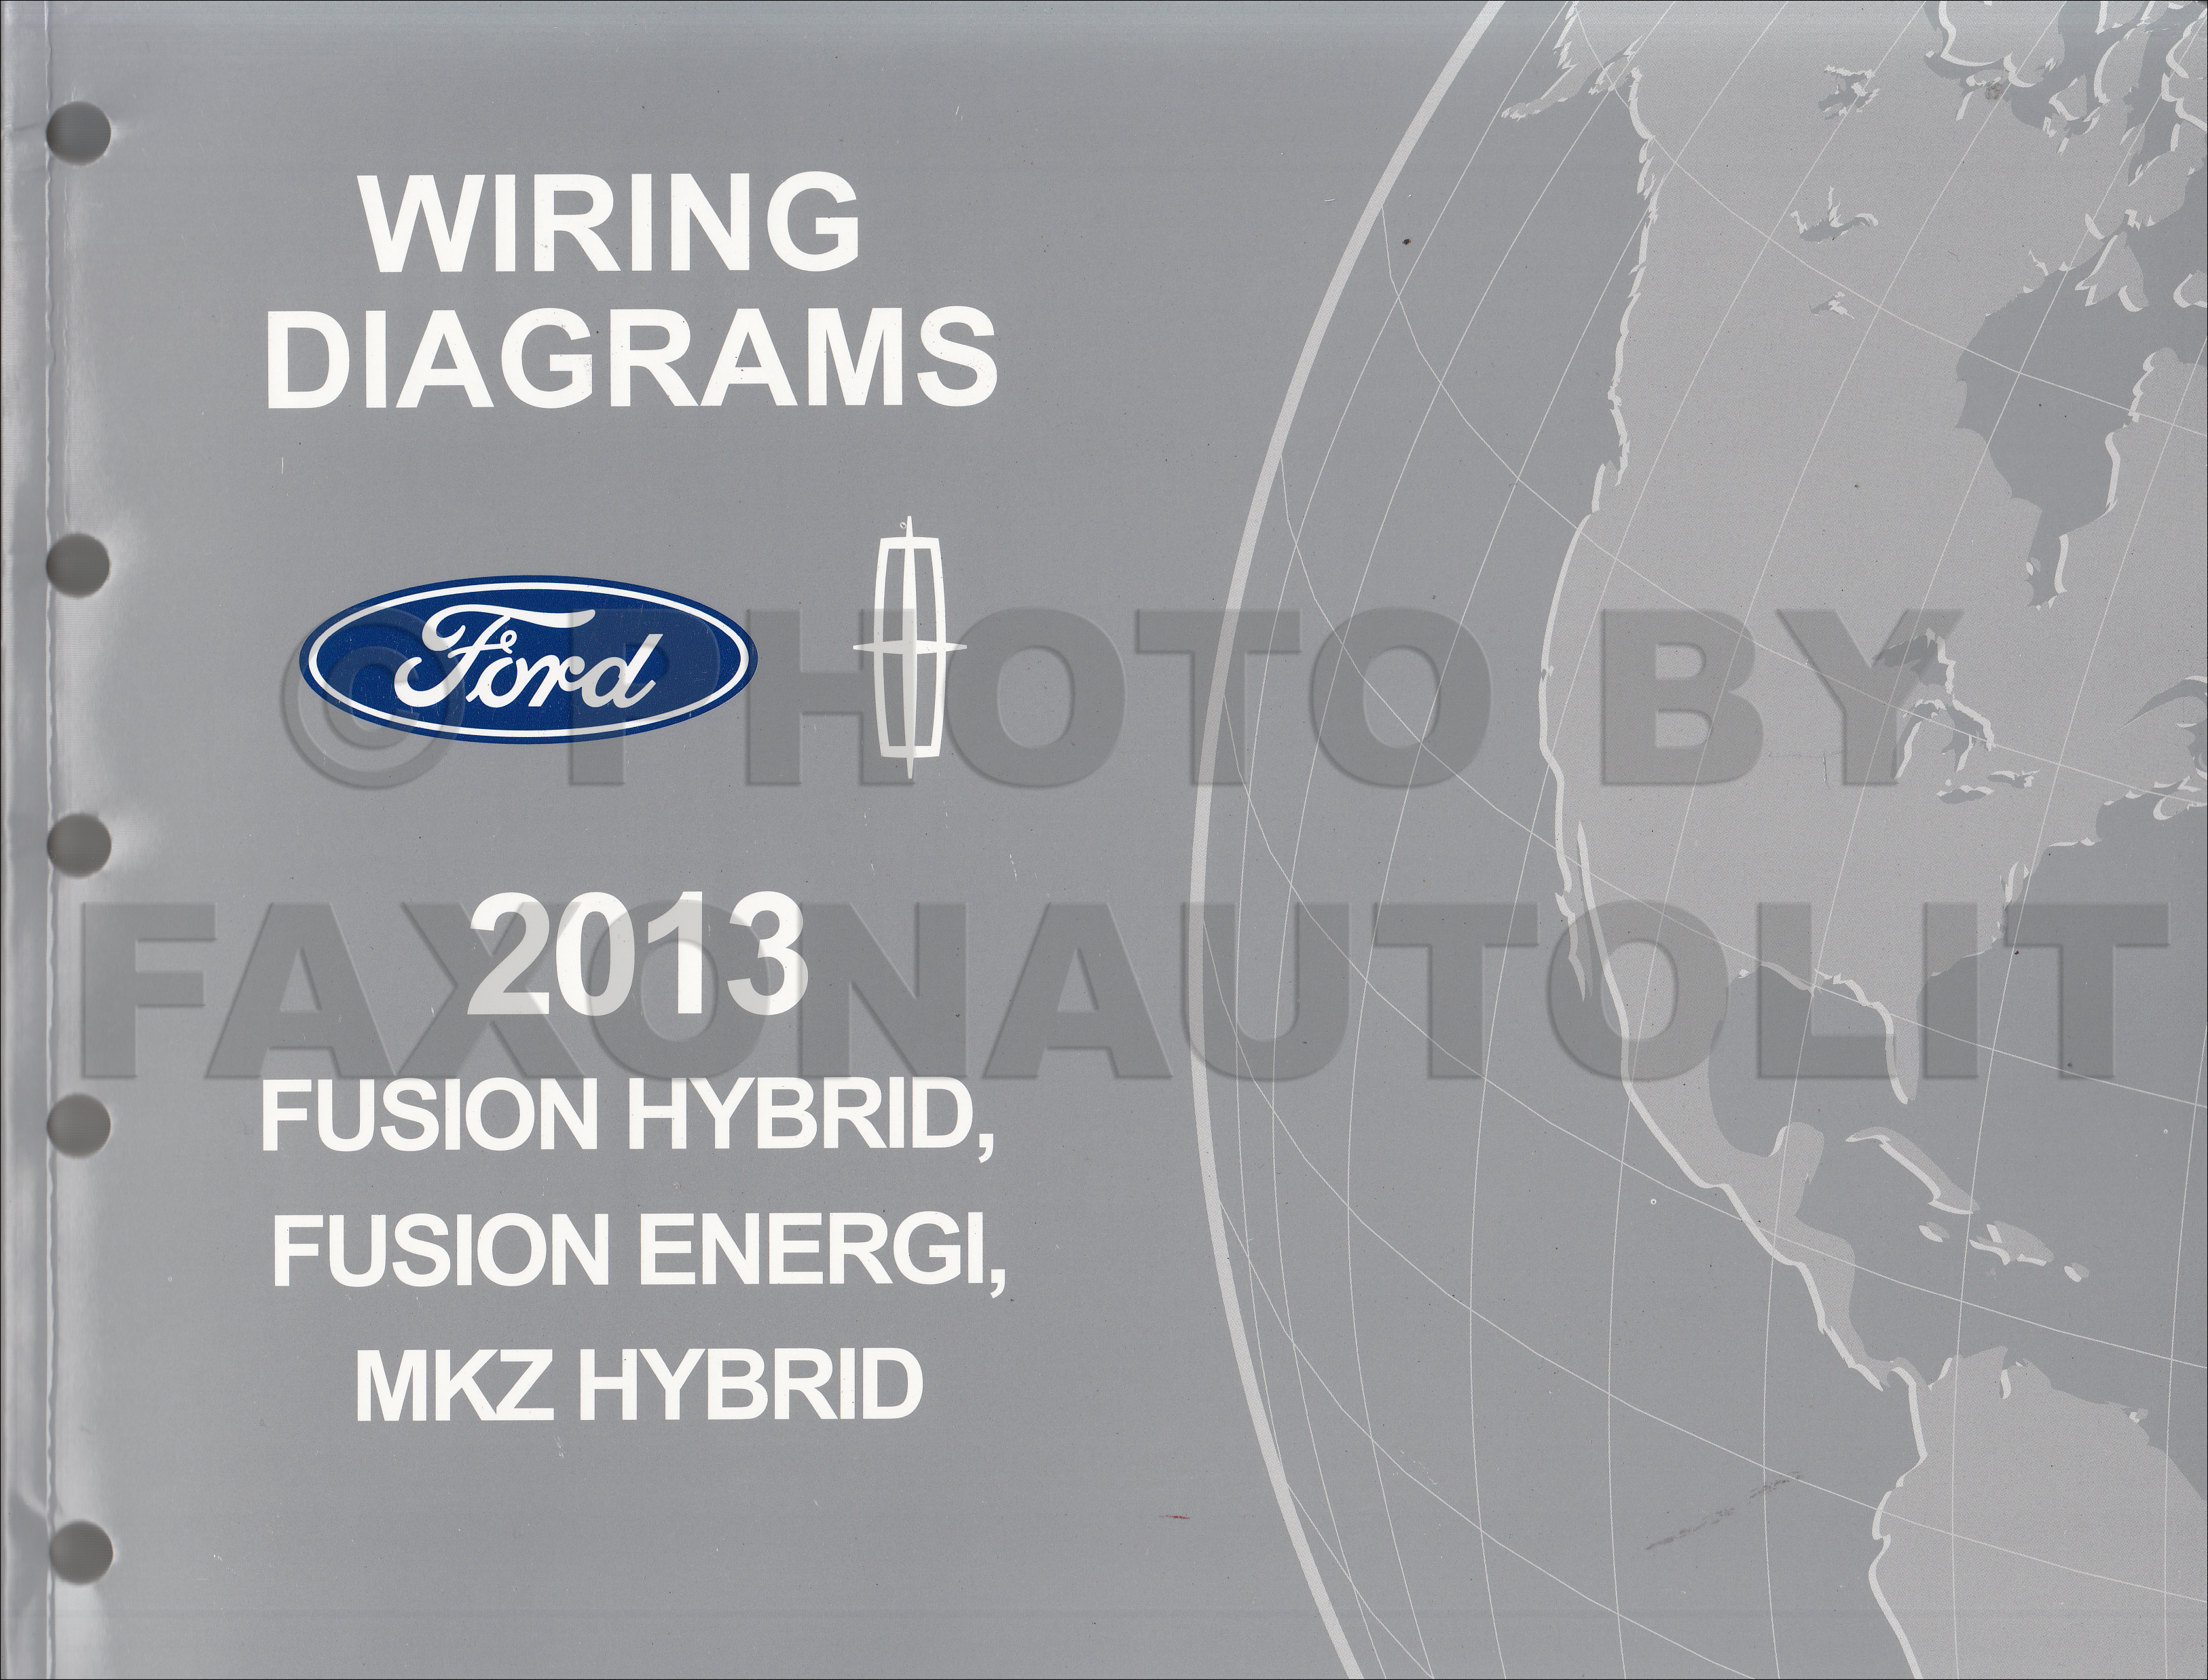 2013 Ford Fusion Energi Lincoln Mkz Hybrid Wiring Diagram Manual